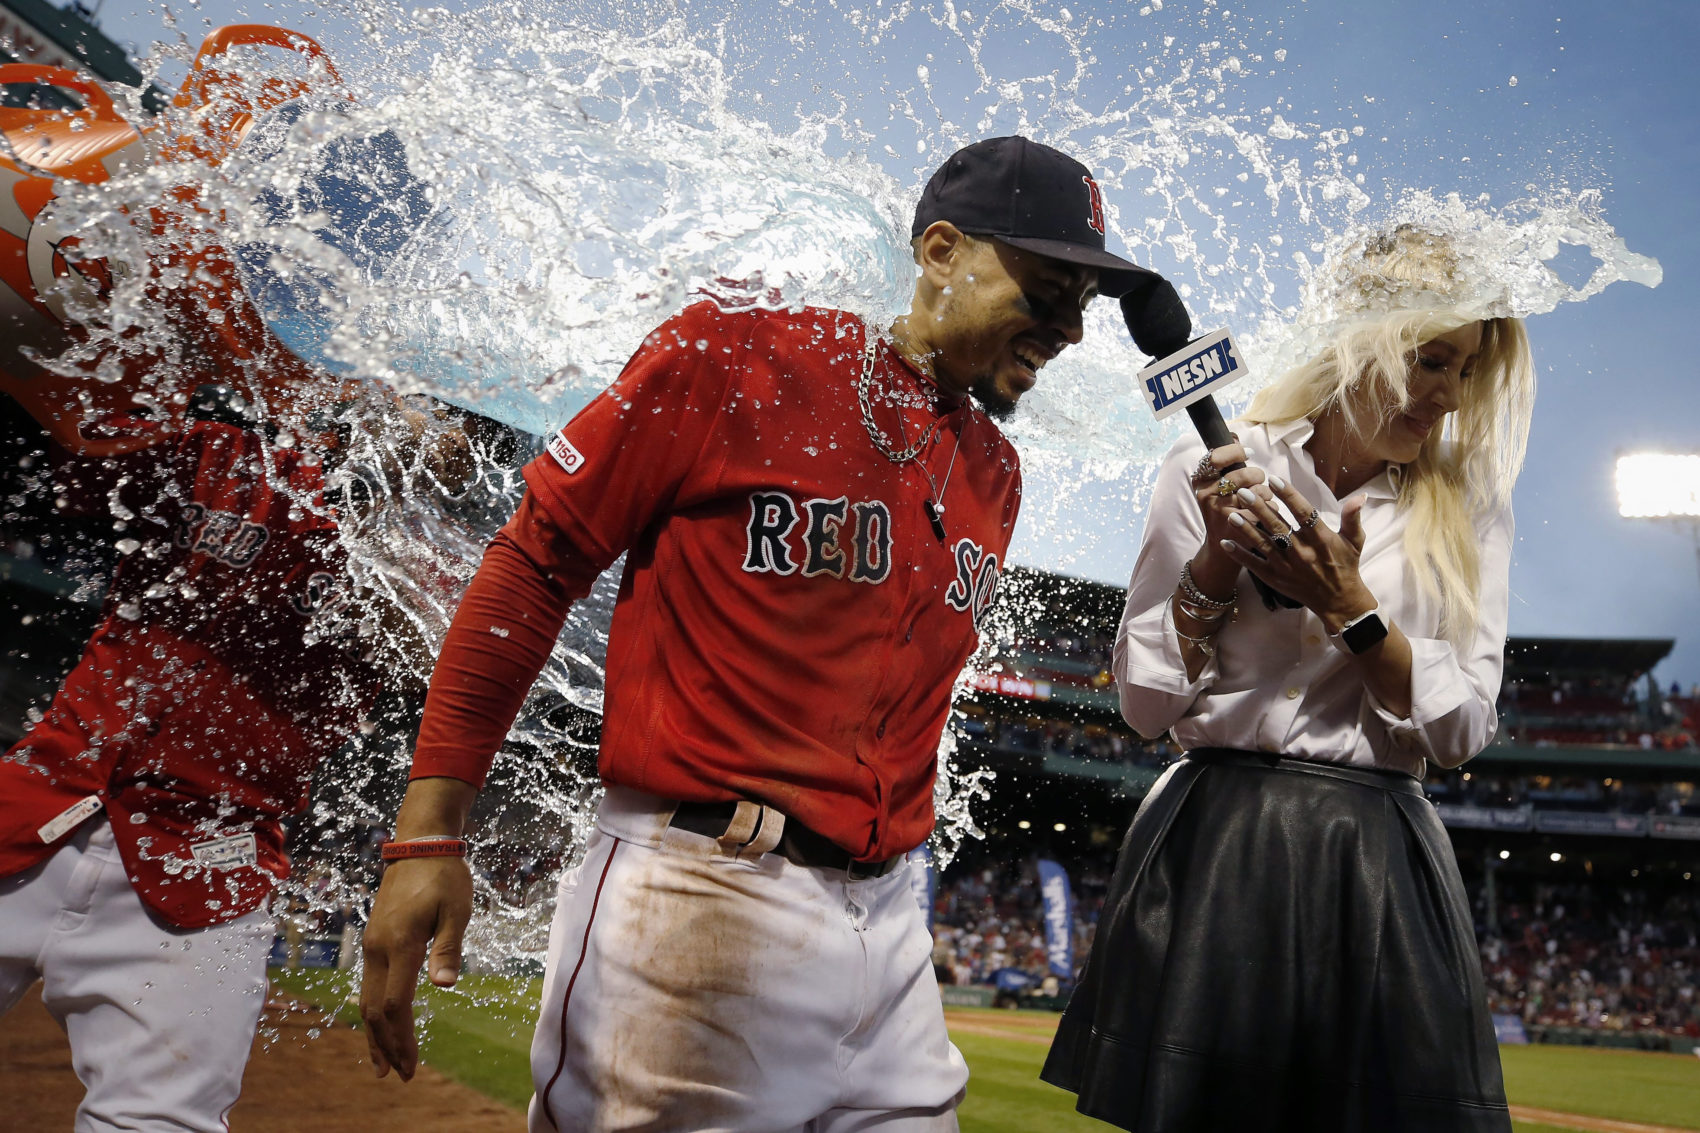 Become A Boston Red Sox StatementGames Fantasy Sports Contributor